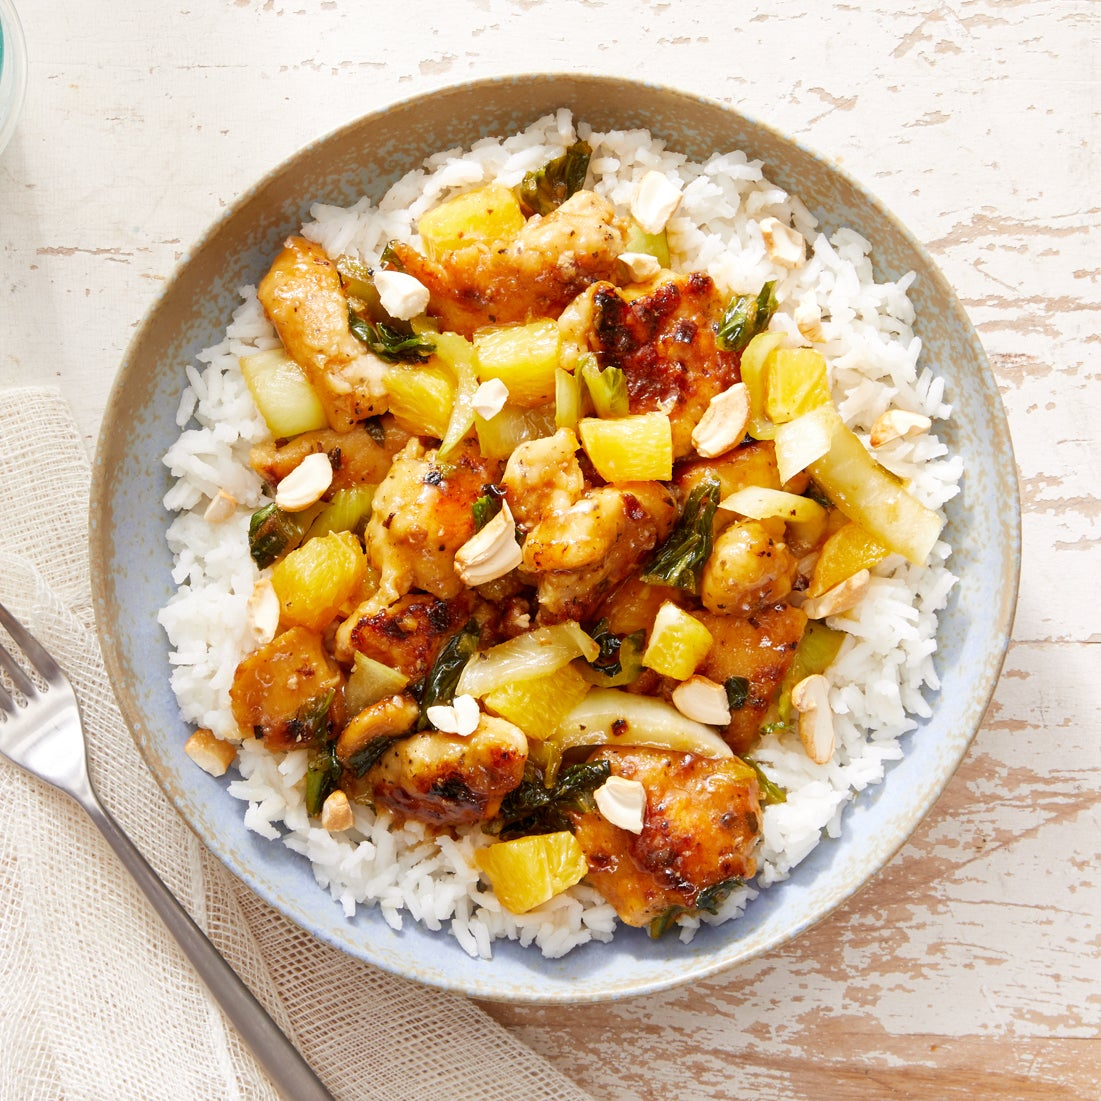 Orange Chicken Stir-Fry with Jasmine Rice